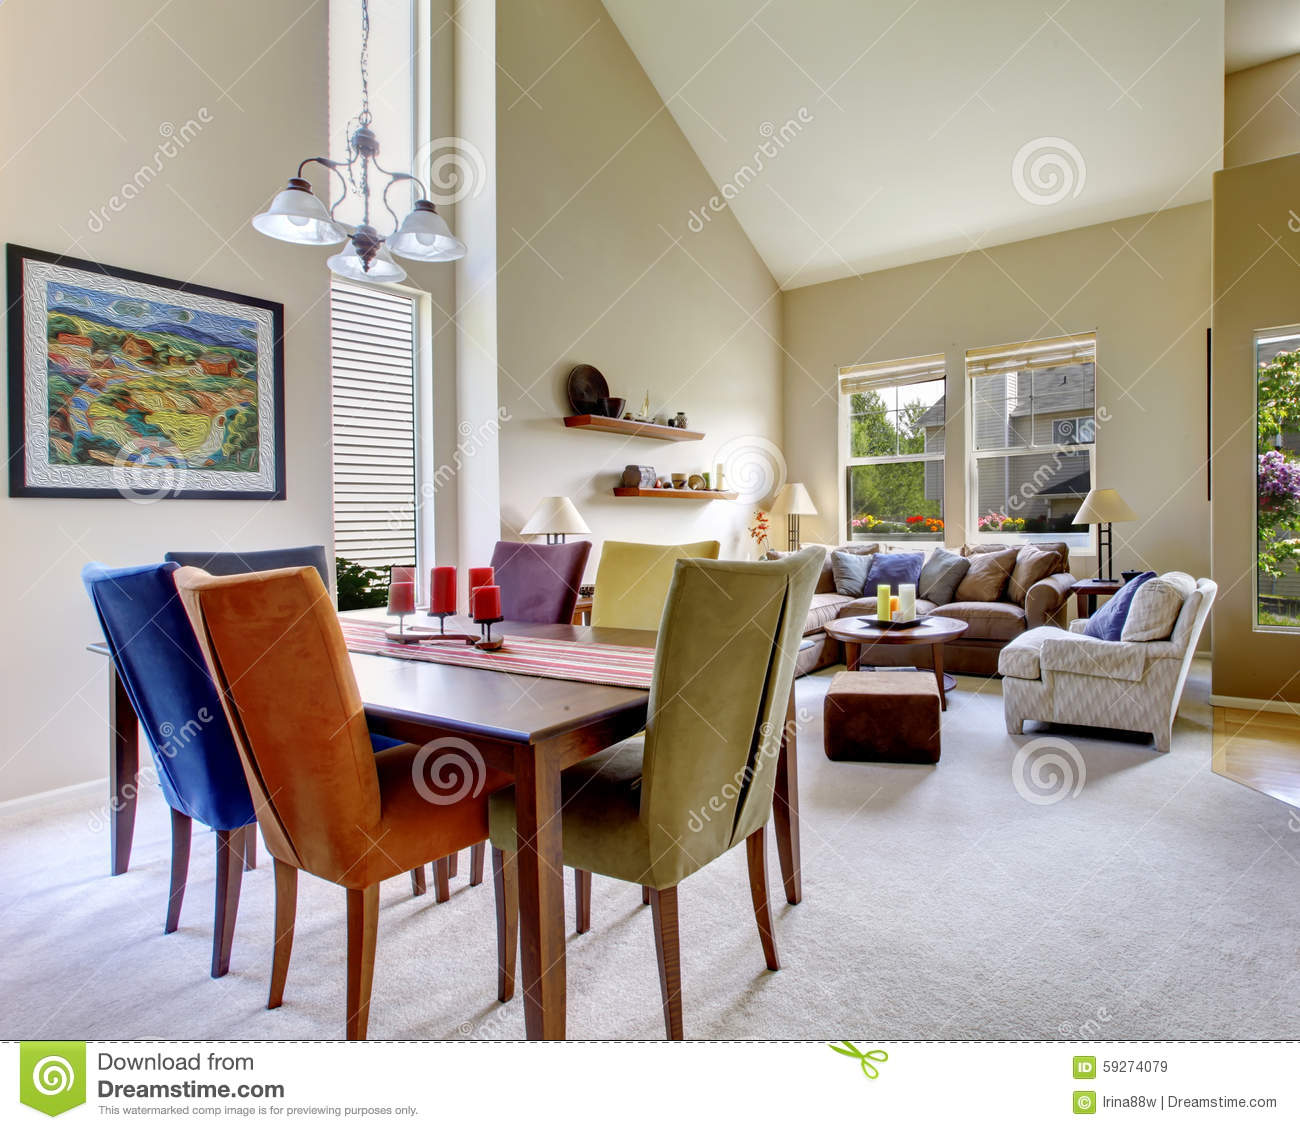 Large Beige Bright Living Room With Dining Room Table With Different Color  Chairs.